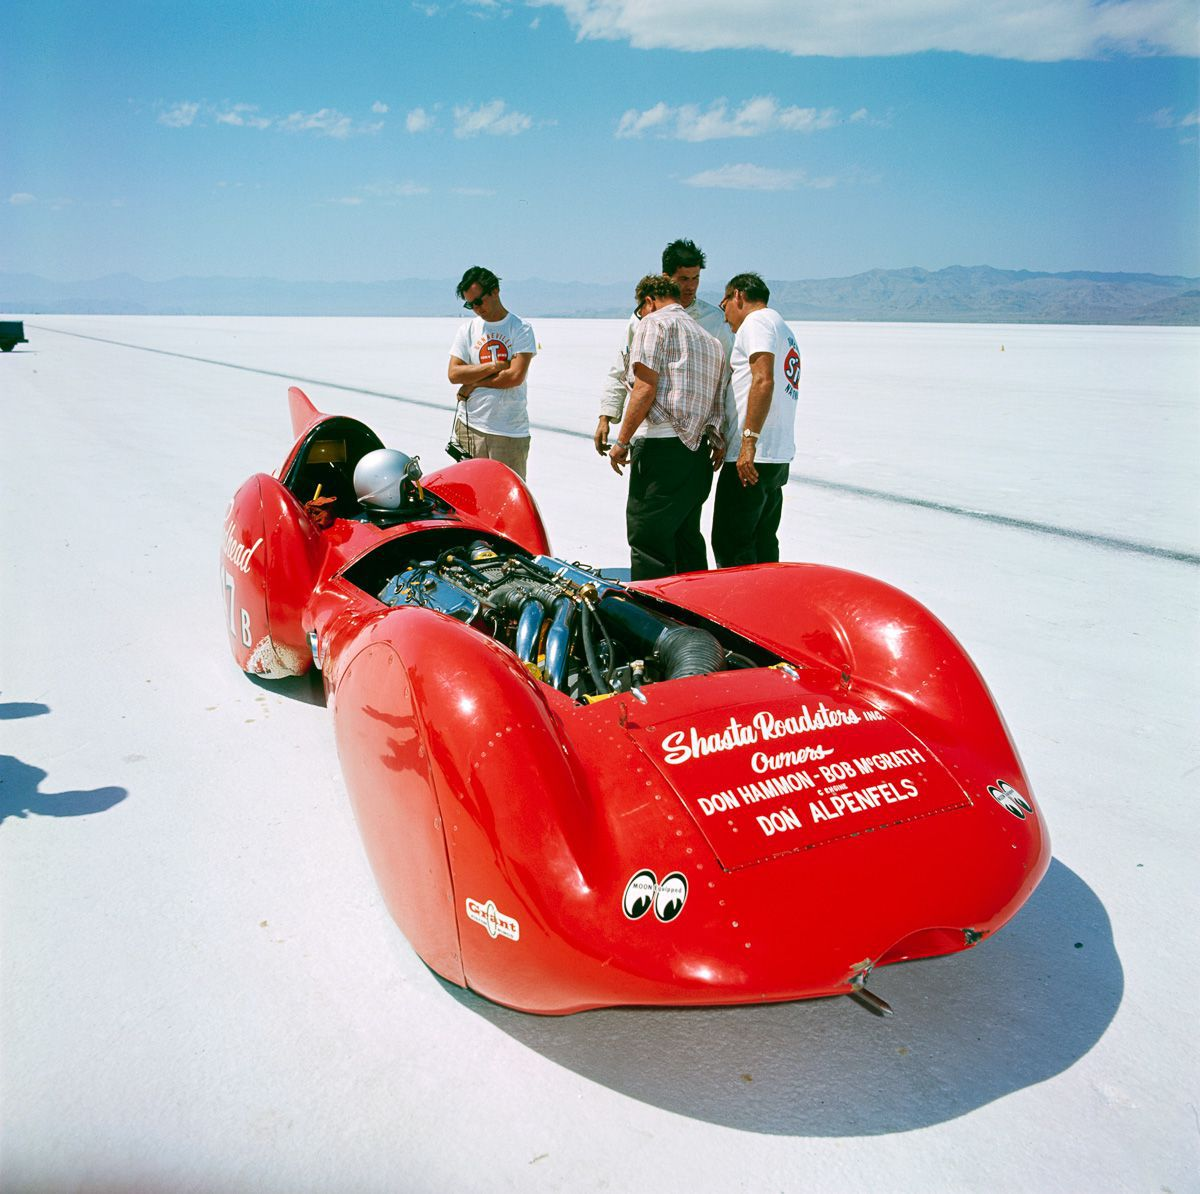 45 The Hammon-McGrath-Appenfels Redhead streamliner2.jpg